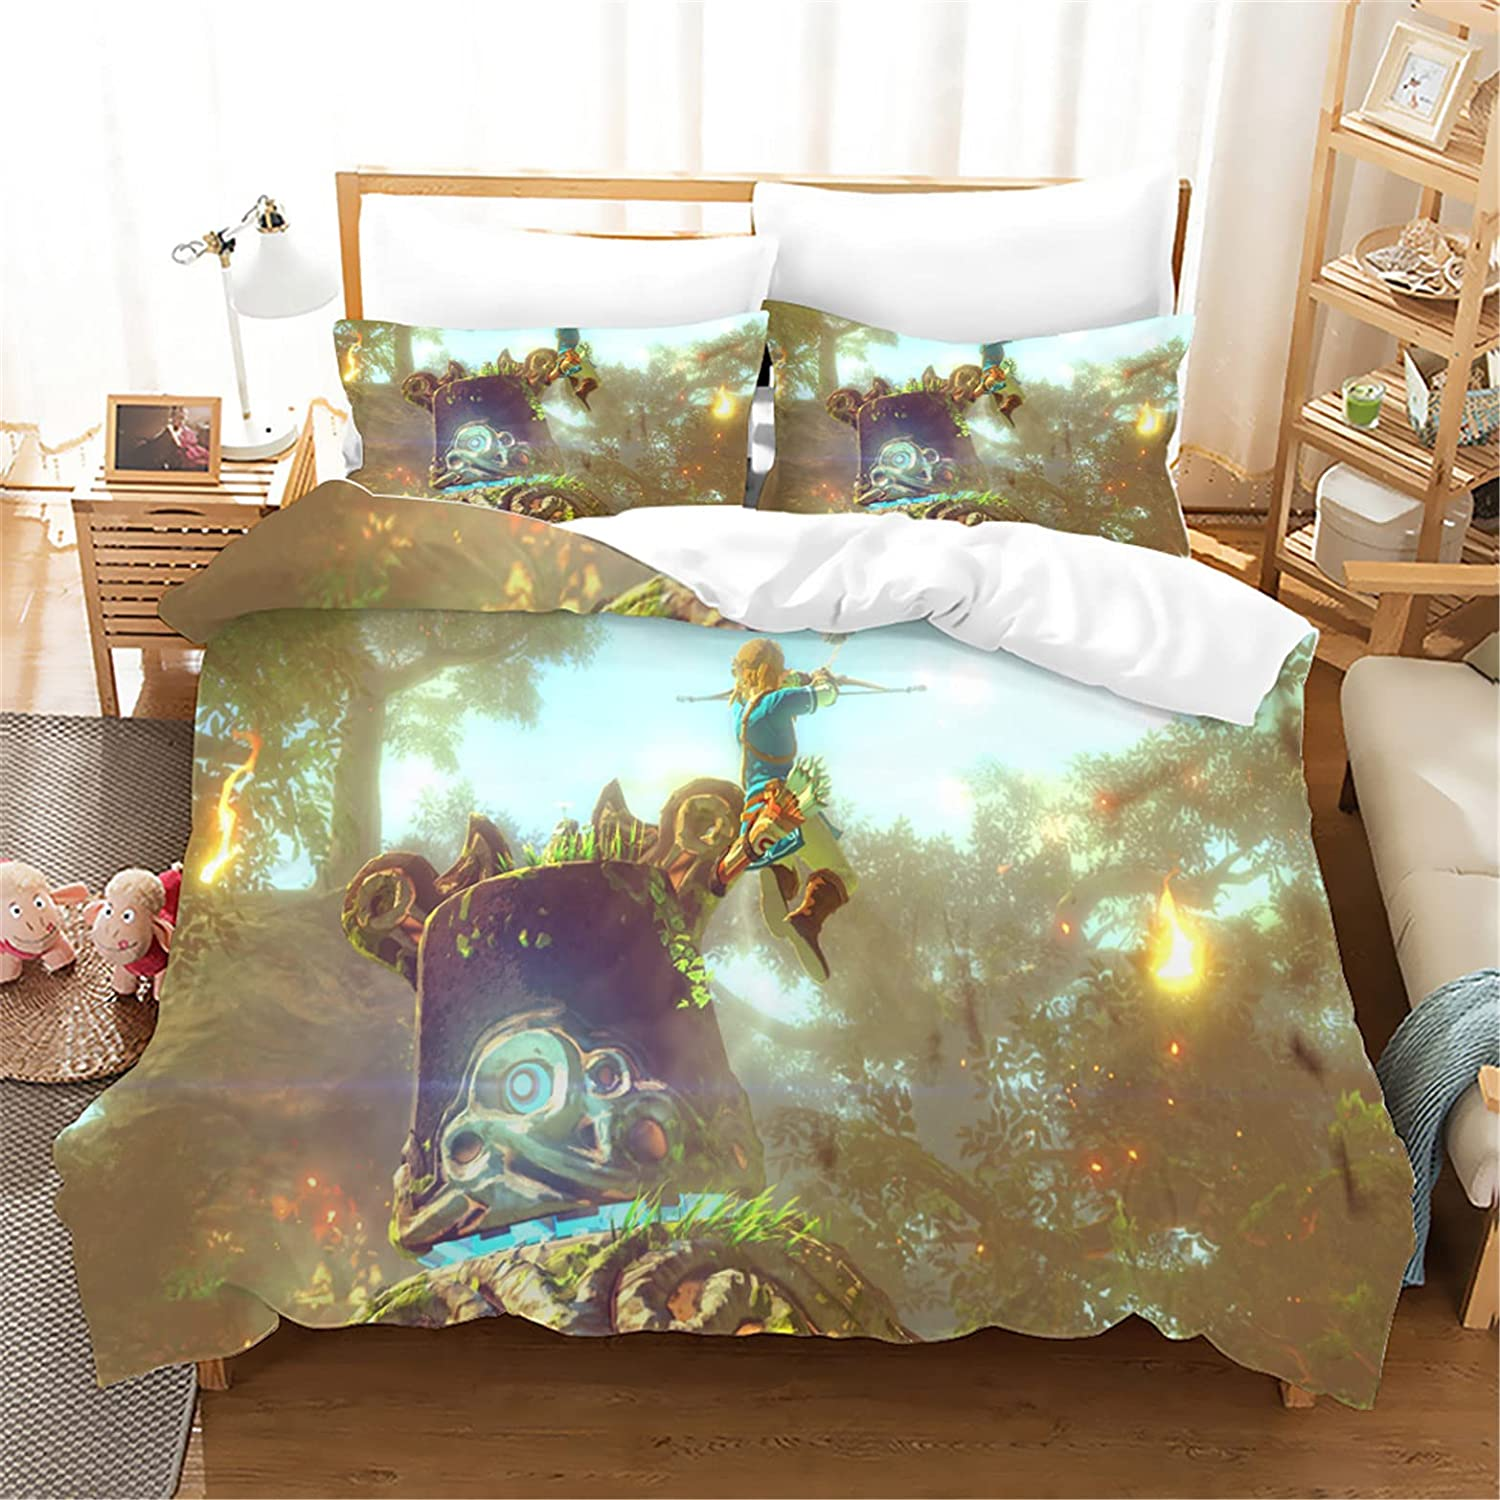 3D The Outlet ☆ Free Shipping Le-gend of Zelda Cartoons Kids Sets Duvet Pieces 2 Cheap mail order shopping Cover